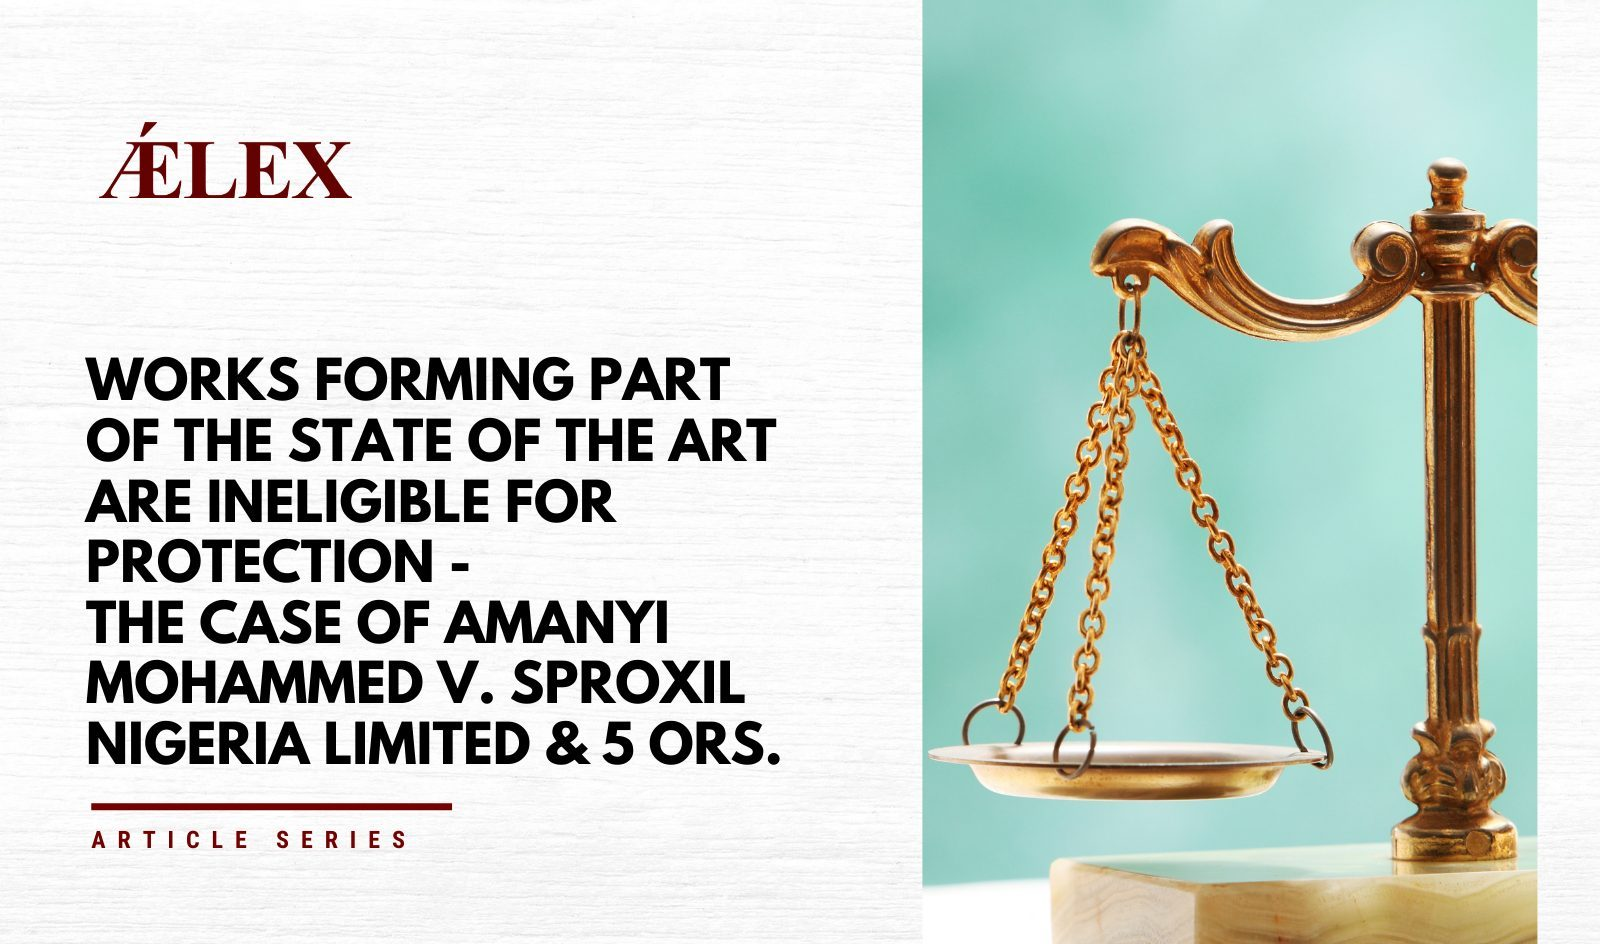 Works Forming Part of the State of the Art are Ineligible for Protection – The Case of Amanyi Mohammed v. Sproxil Nigeria Limited & 5 ors.